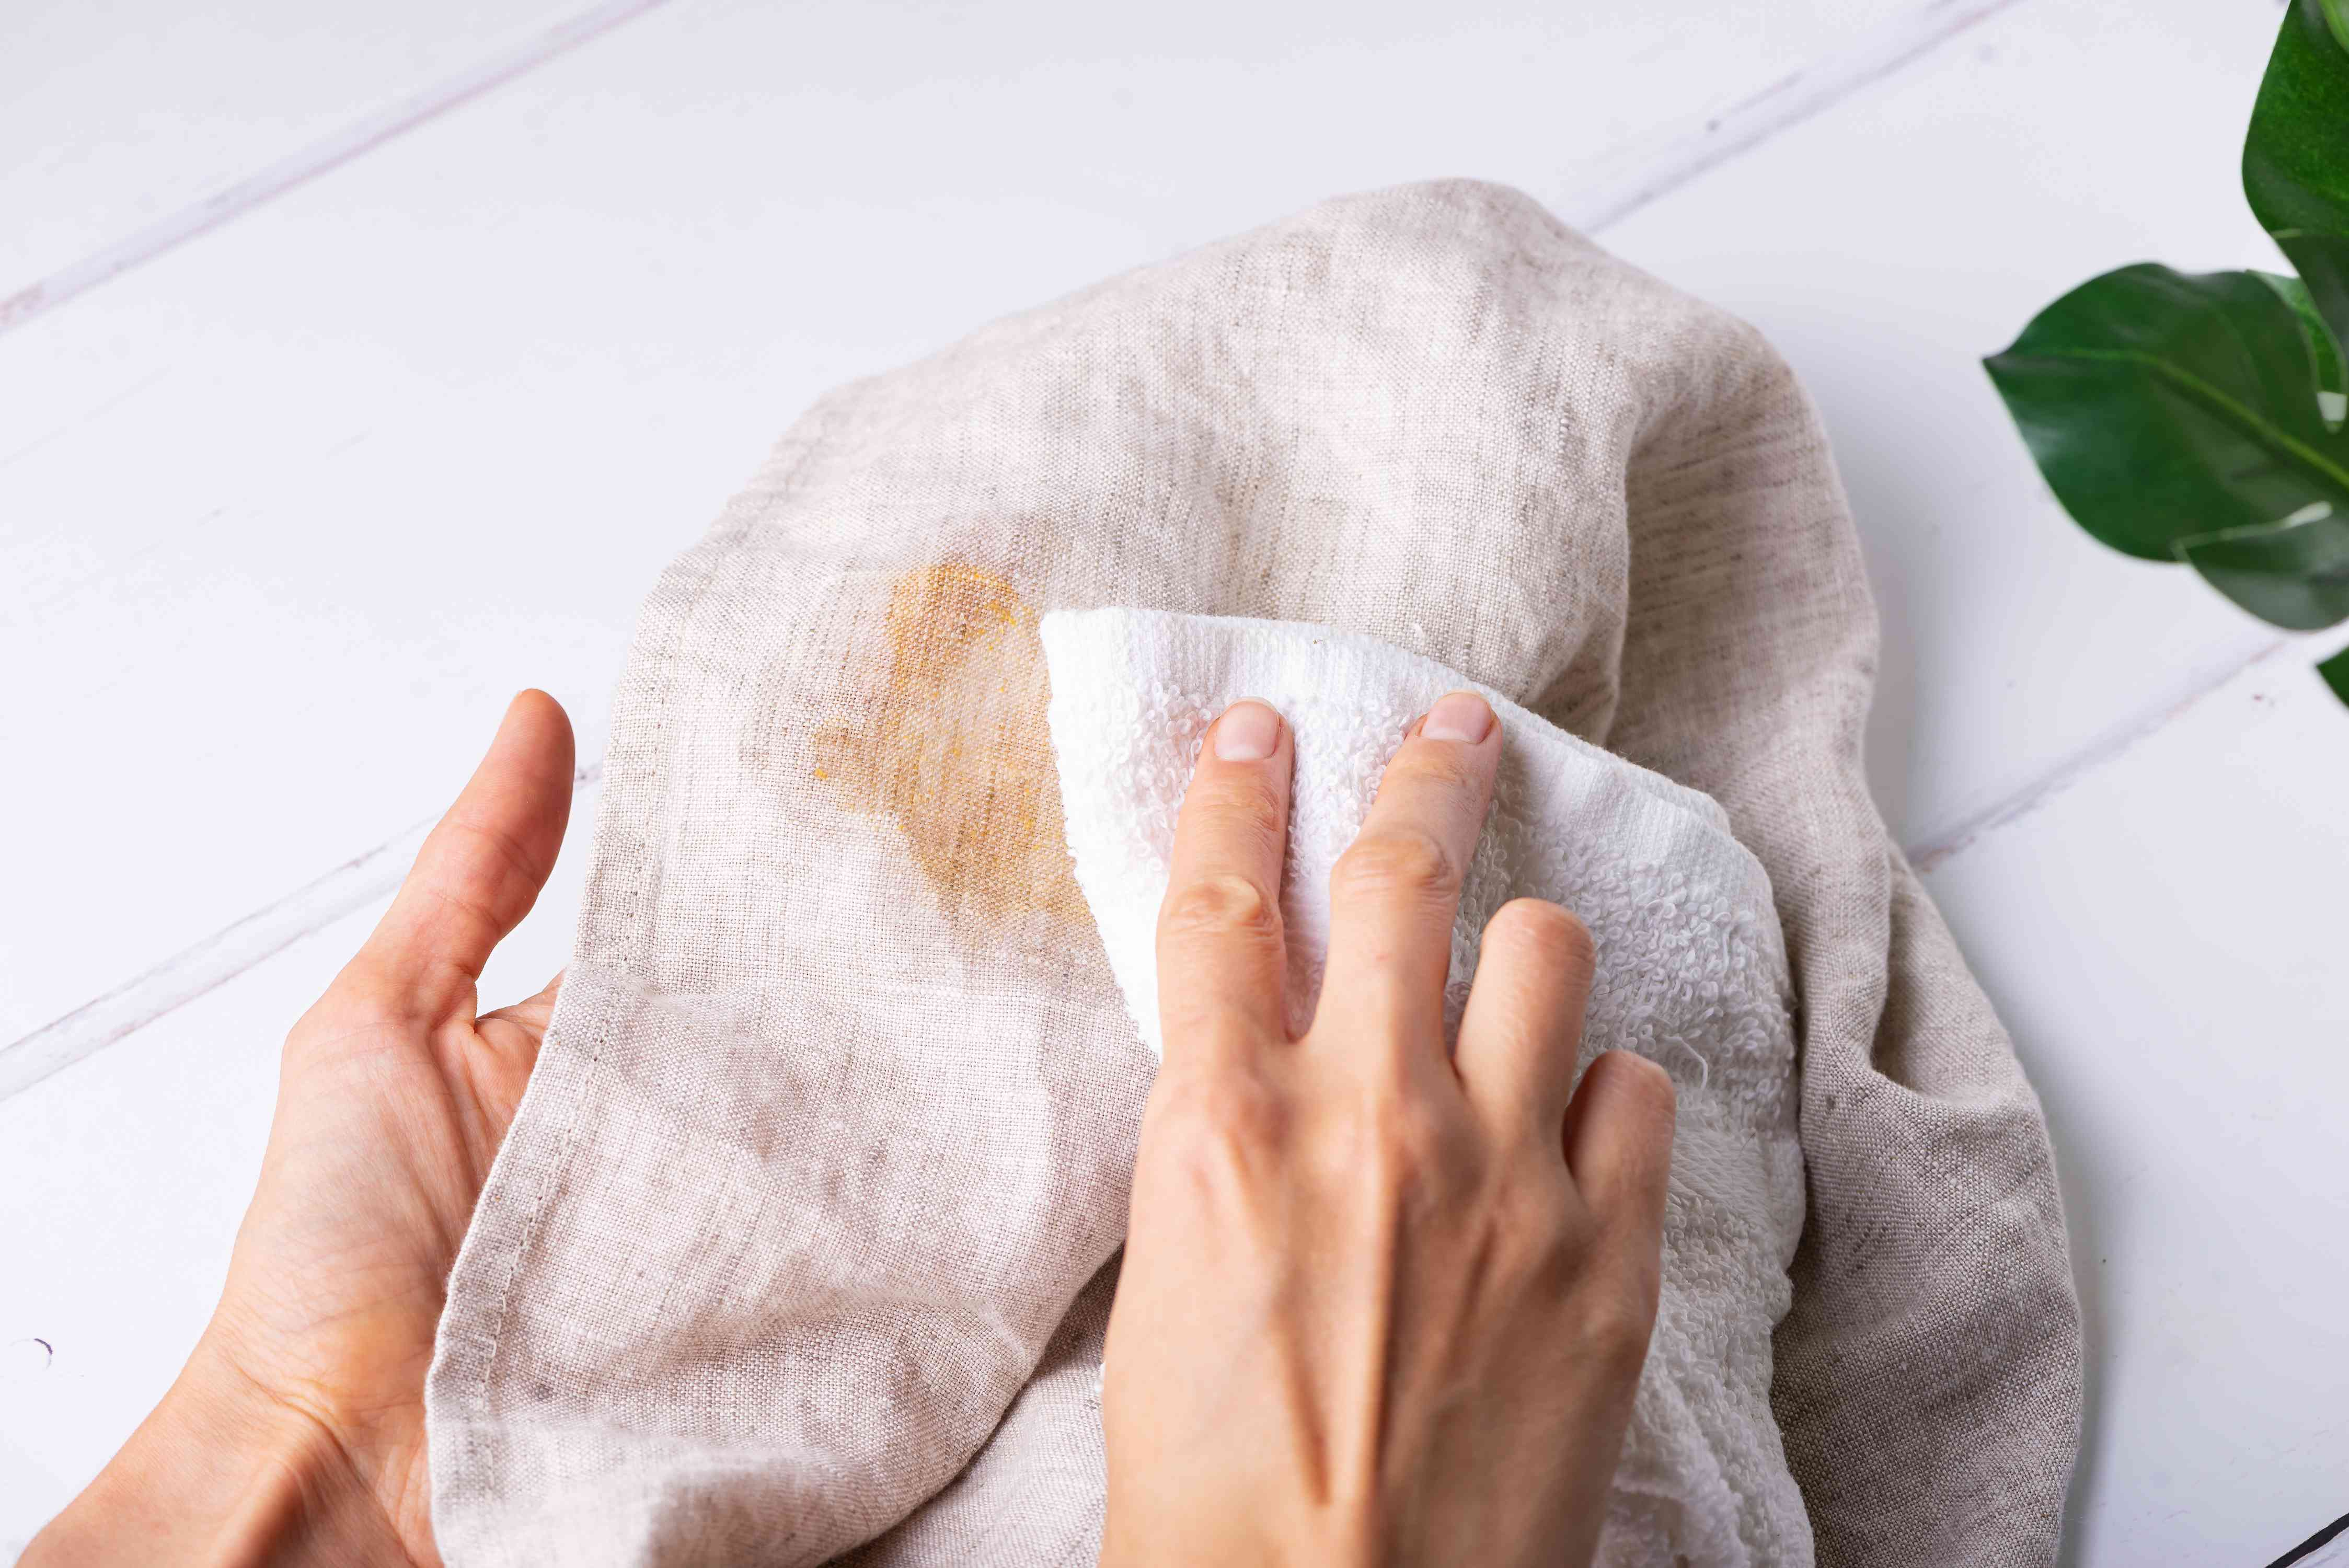 blotting the stain on the towel